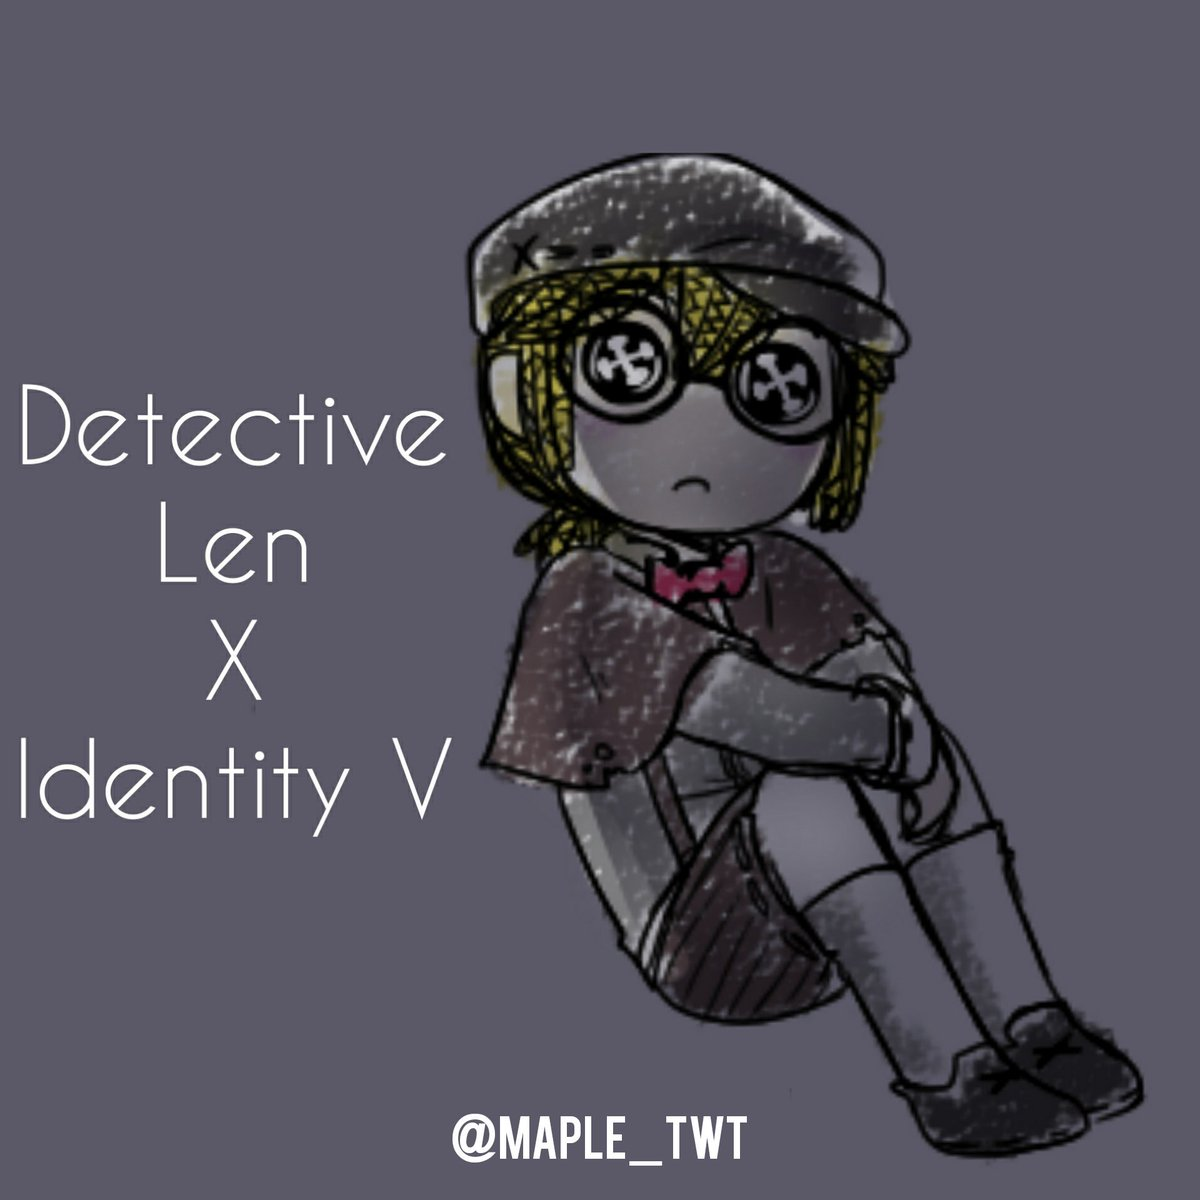 Im really enjoying #identityV so here's what #detectivelen would be